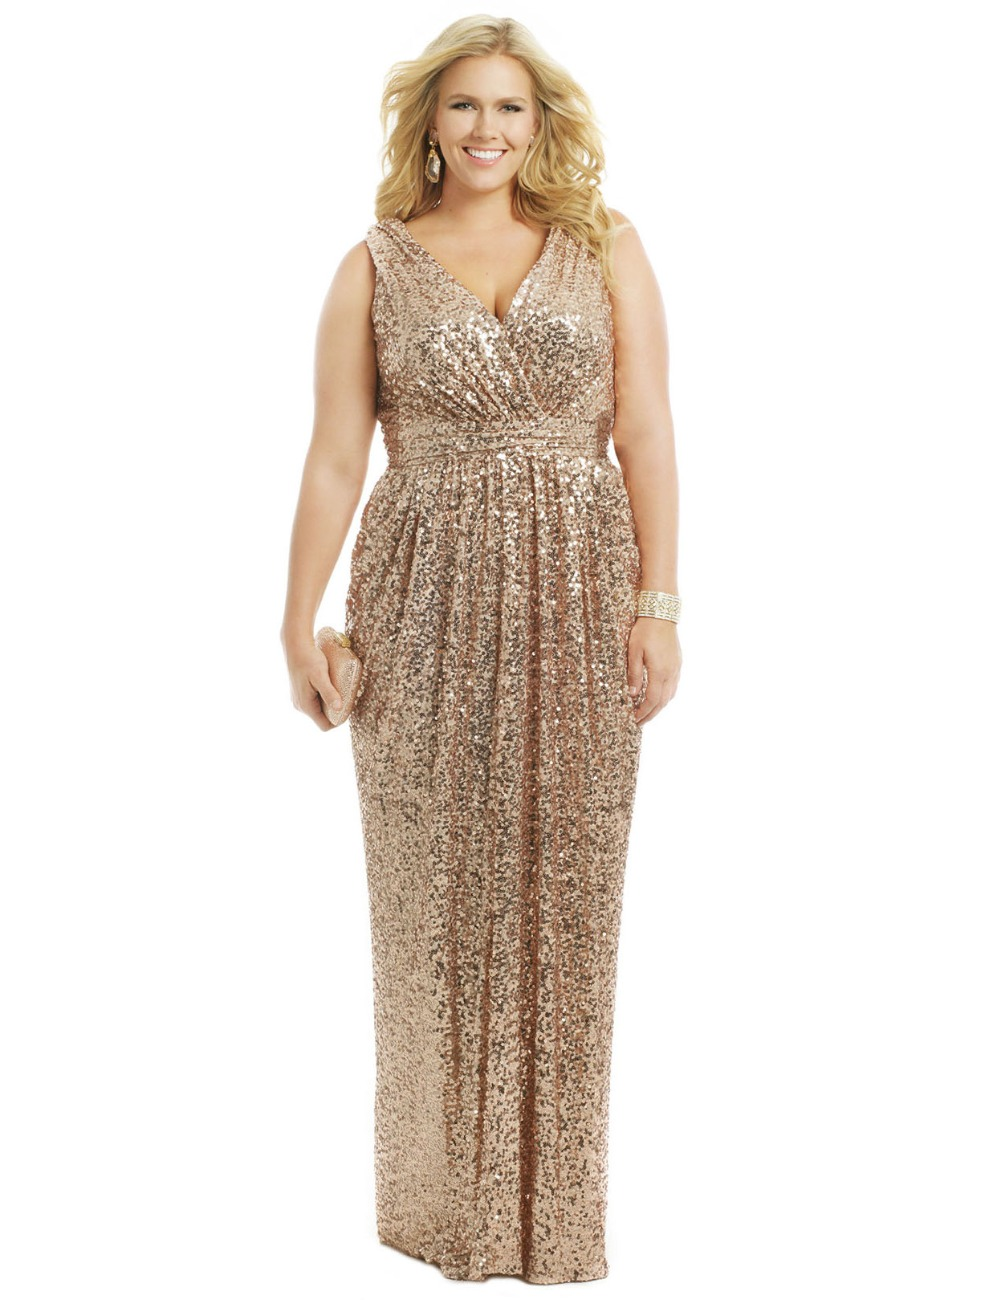 Sparkling plus size gold sequins bridesmaid dresses for Plus size wedding party dresses